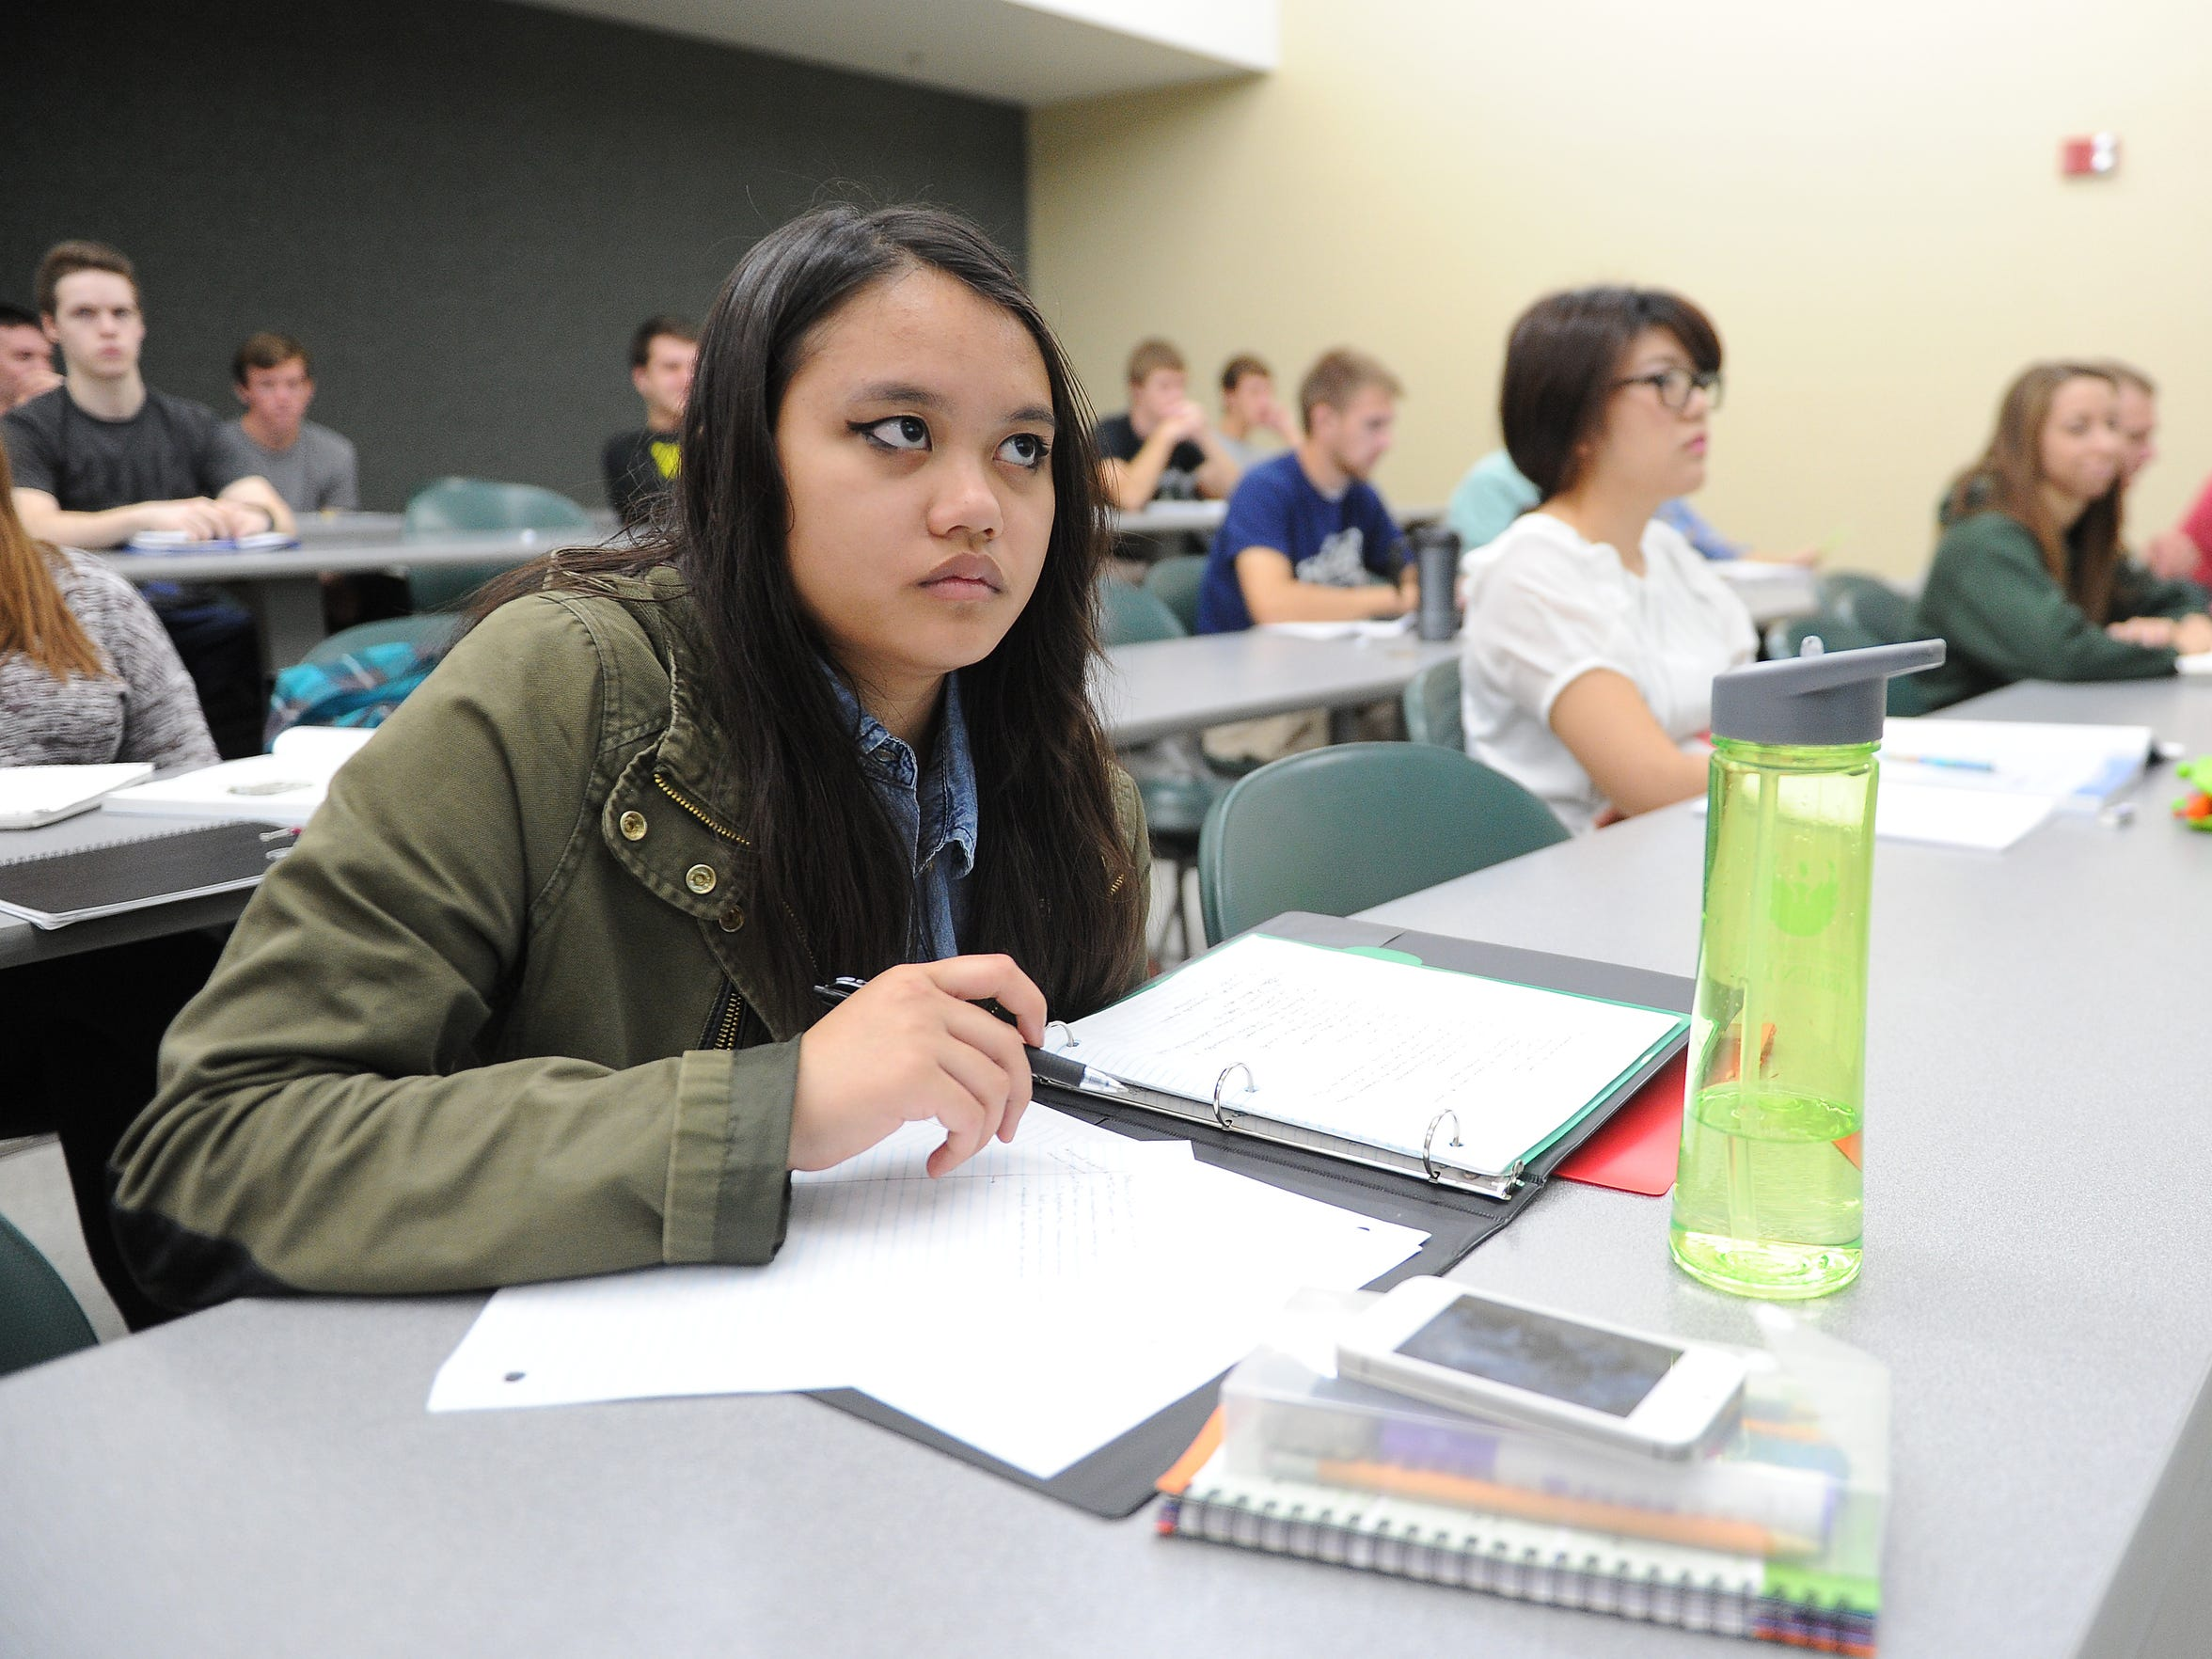 Ives Cupino, a 16-year-old freshman at the University of Wisconsin-Green Bay during a class in Mary Ann Cofrin Hall.